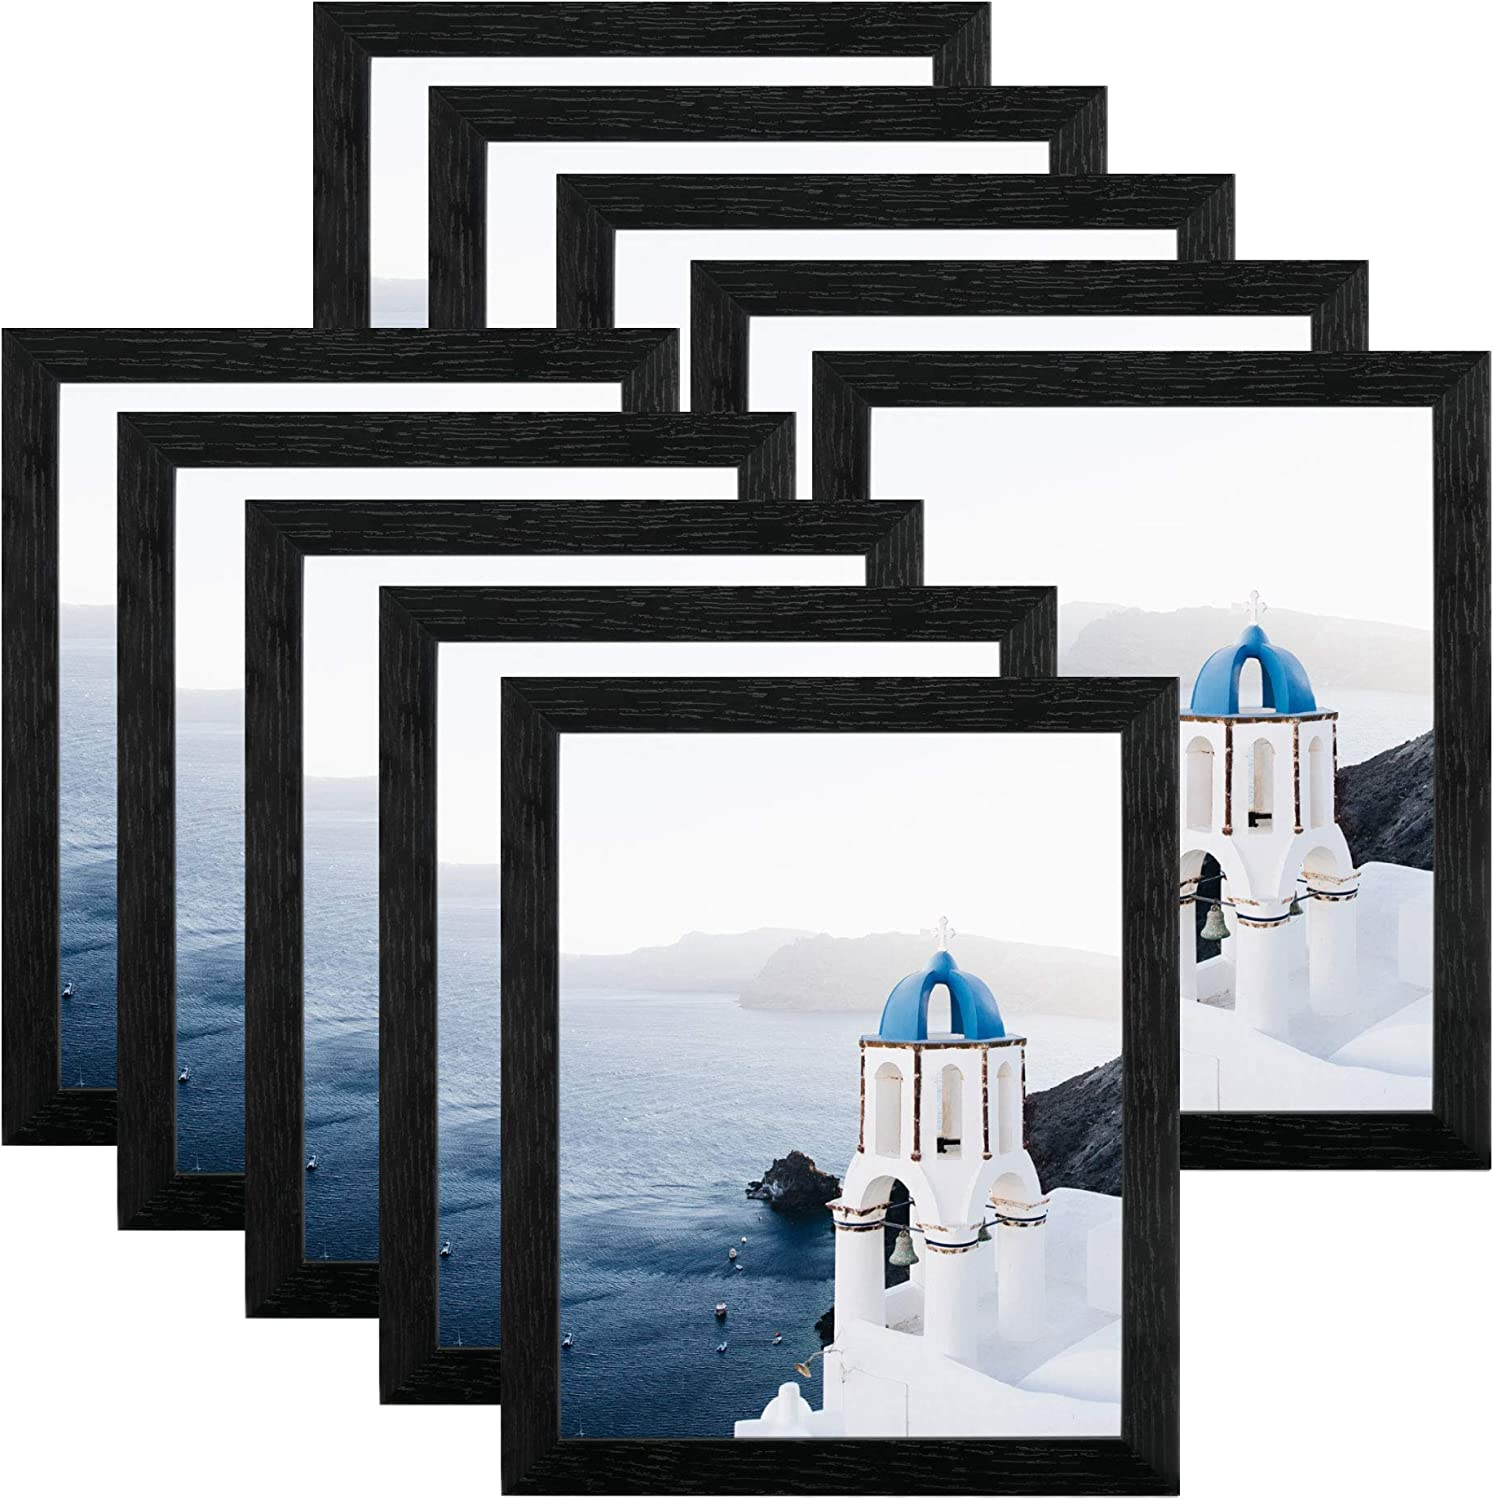 FRAME YI 8x10 Black Picture Frames Tabletop 10 Pack Fr A surprise price is realized Wall Special Campaign and